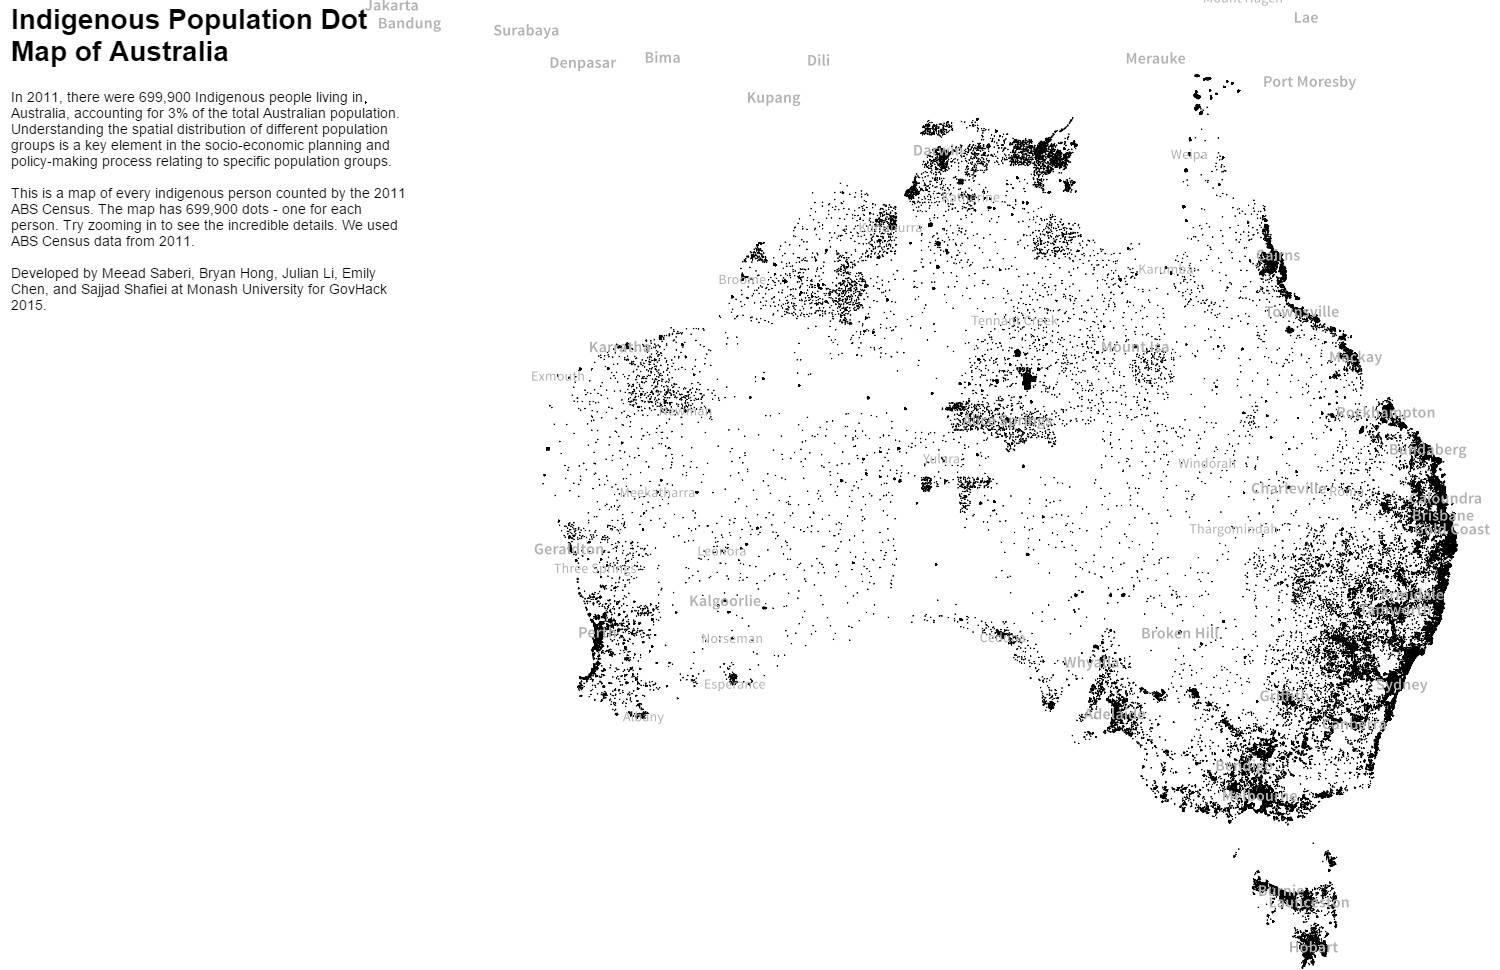 Indigenous population dot map of Australia